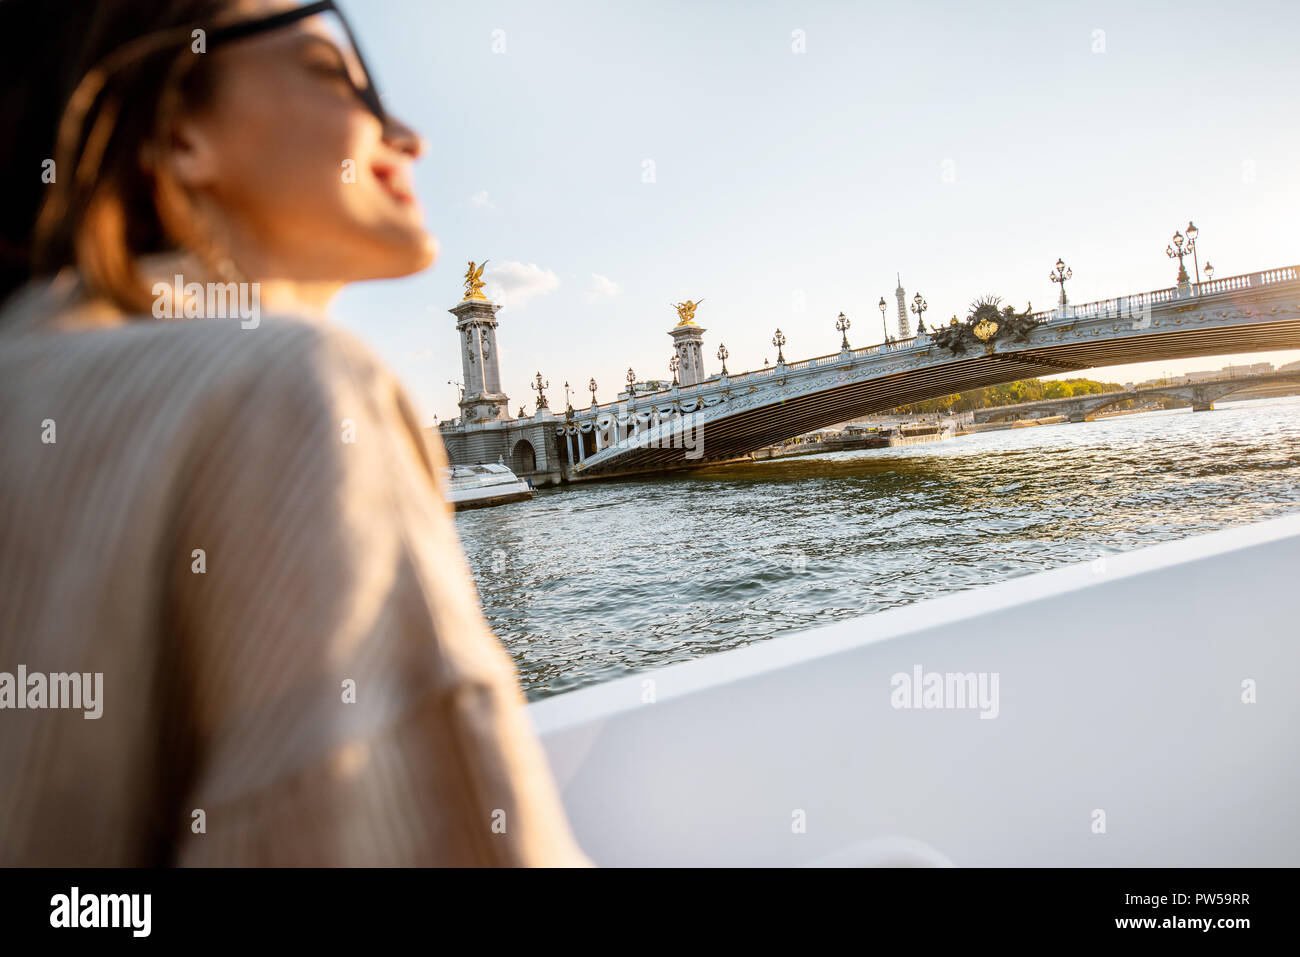 Young woman enjoying beautiful landscape view on the riverside from the ship during the sunset in Paris Stock Photo